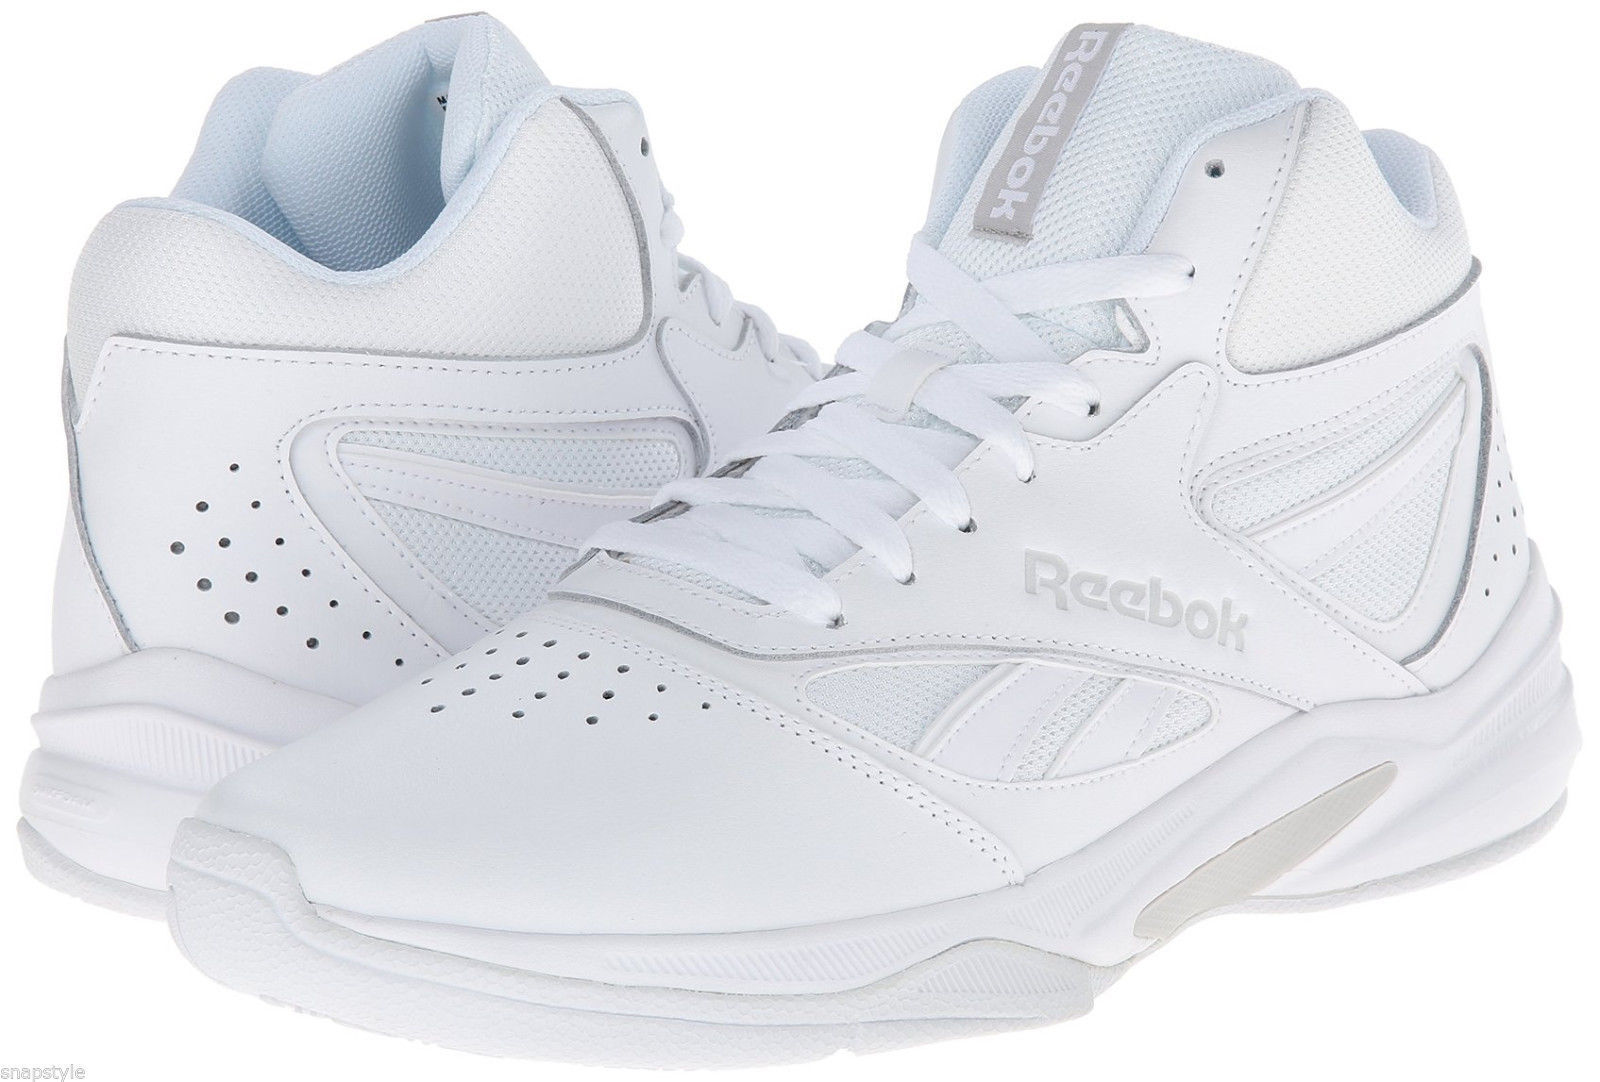 d01cb5aeaa8 Reebok Mens Mens Mens Pro Heritage Hi Top Sneakers Leather All White Sizes  New 7-15 bf58ce